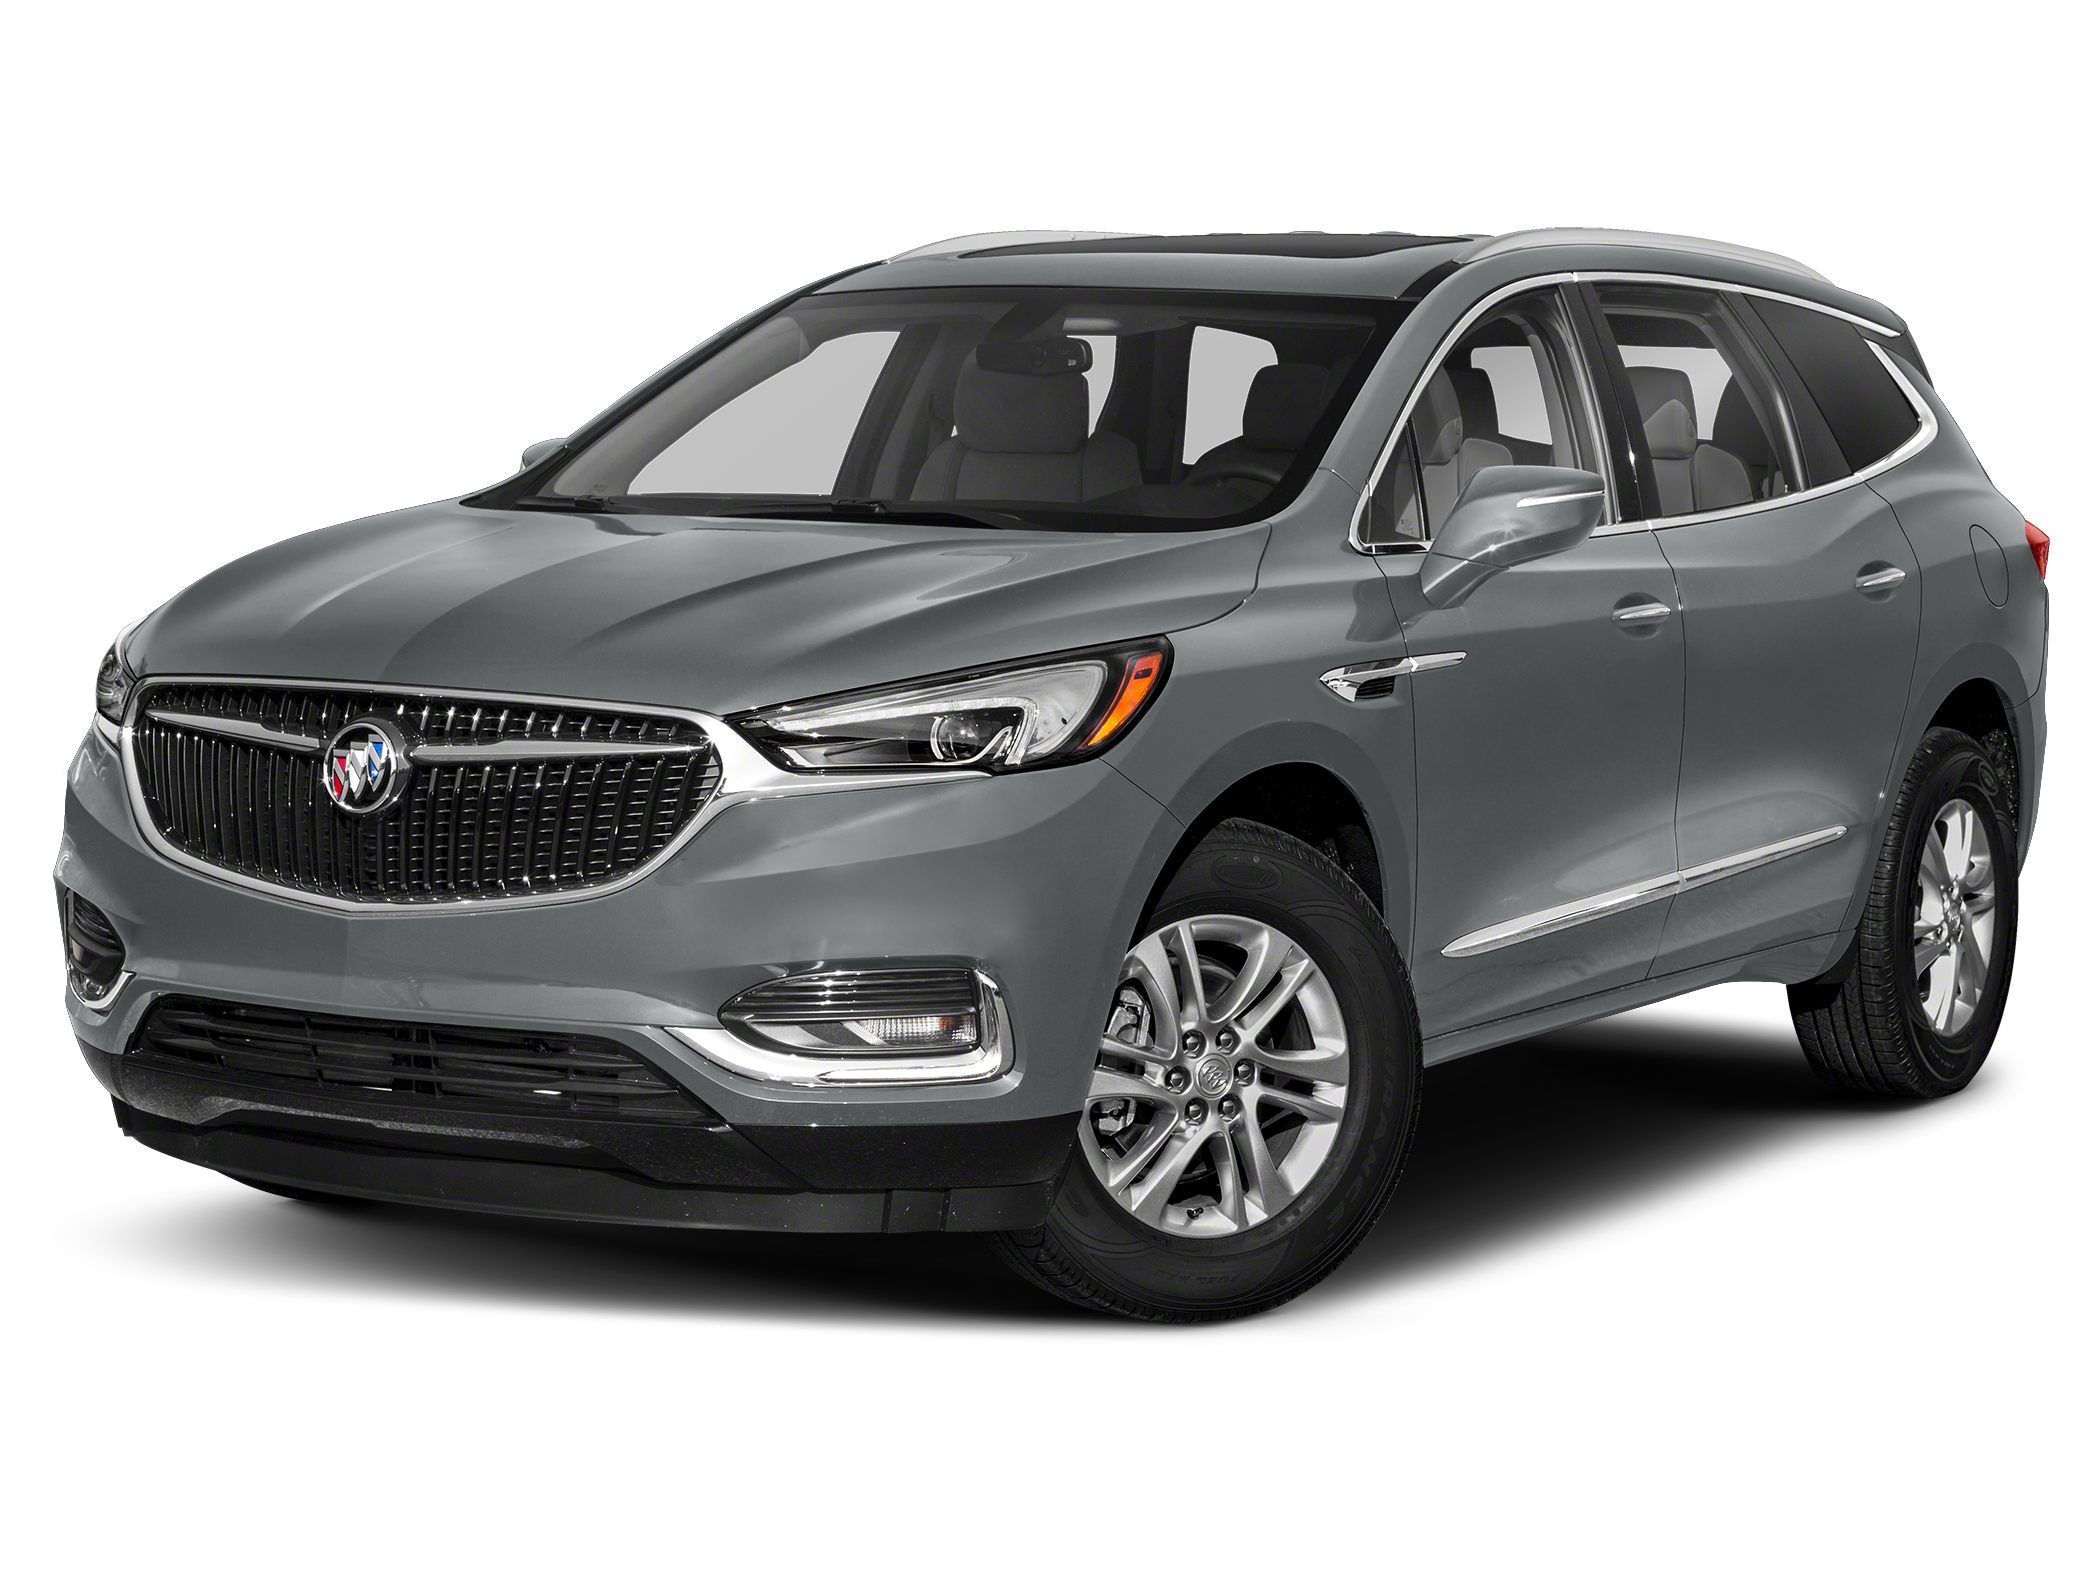 New 2020 Buick Enclave For Sale In Cortland, Ny   Near 2021 Buick Enclave Length, Leather, Lease Price